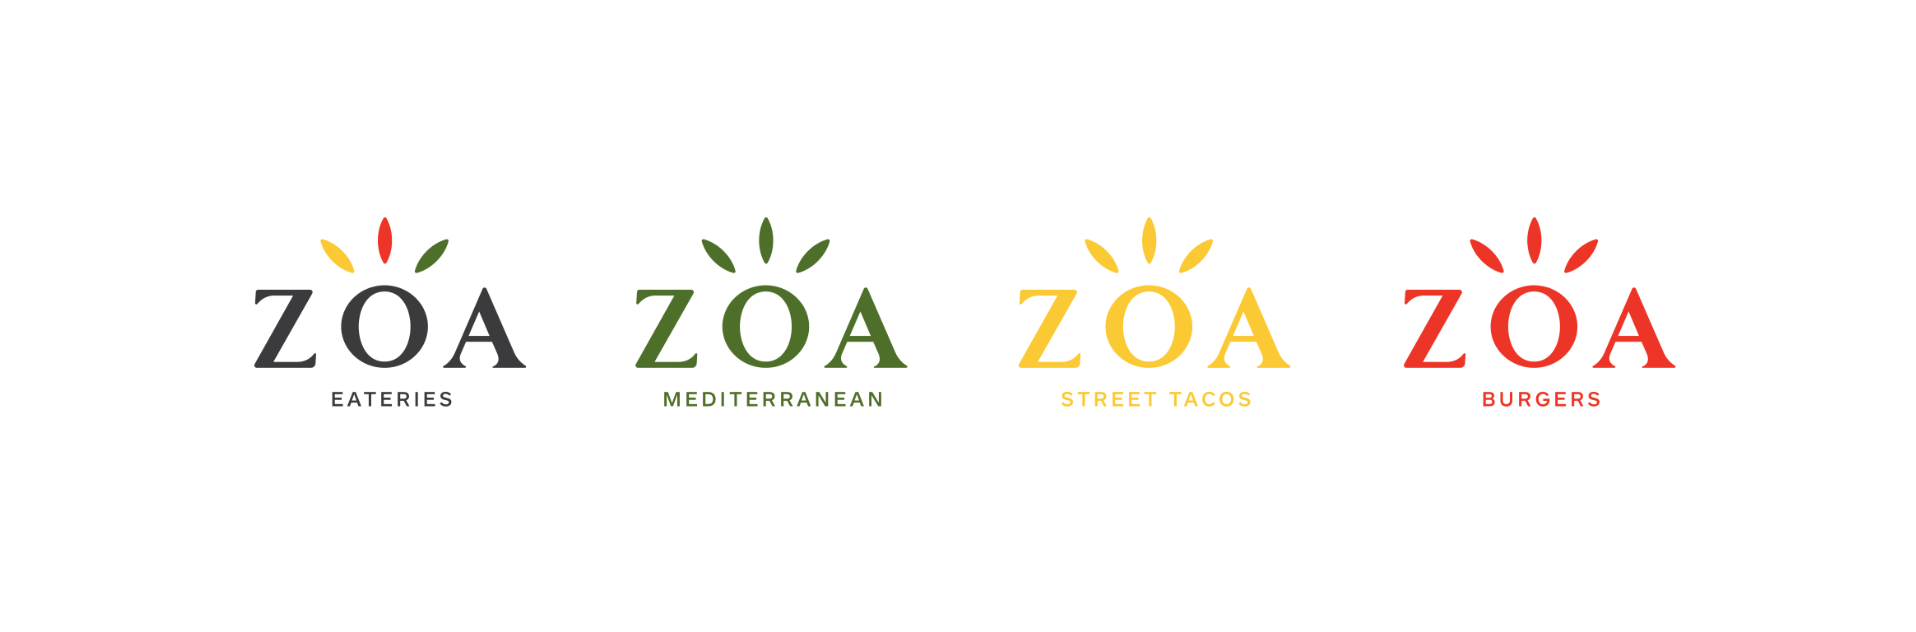 The all new ZOA identity.